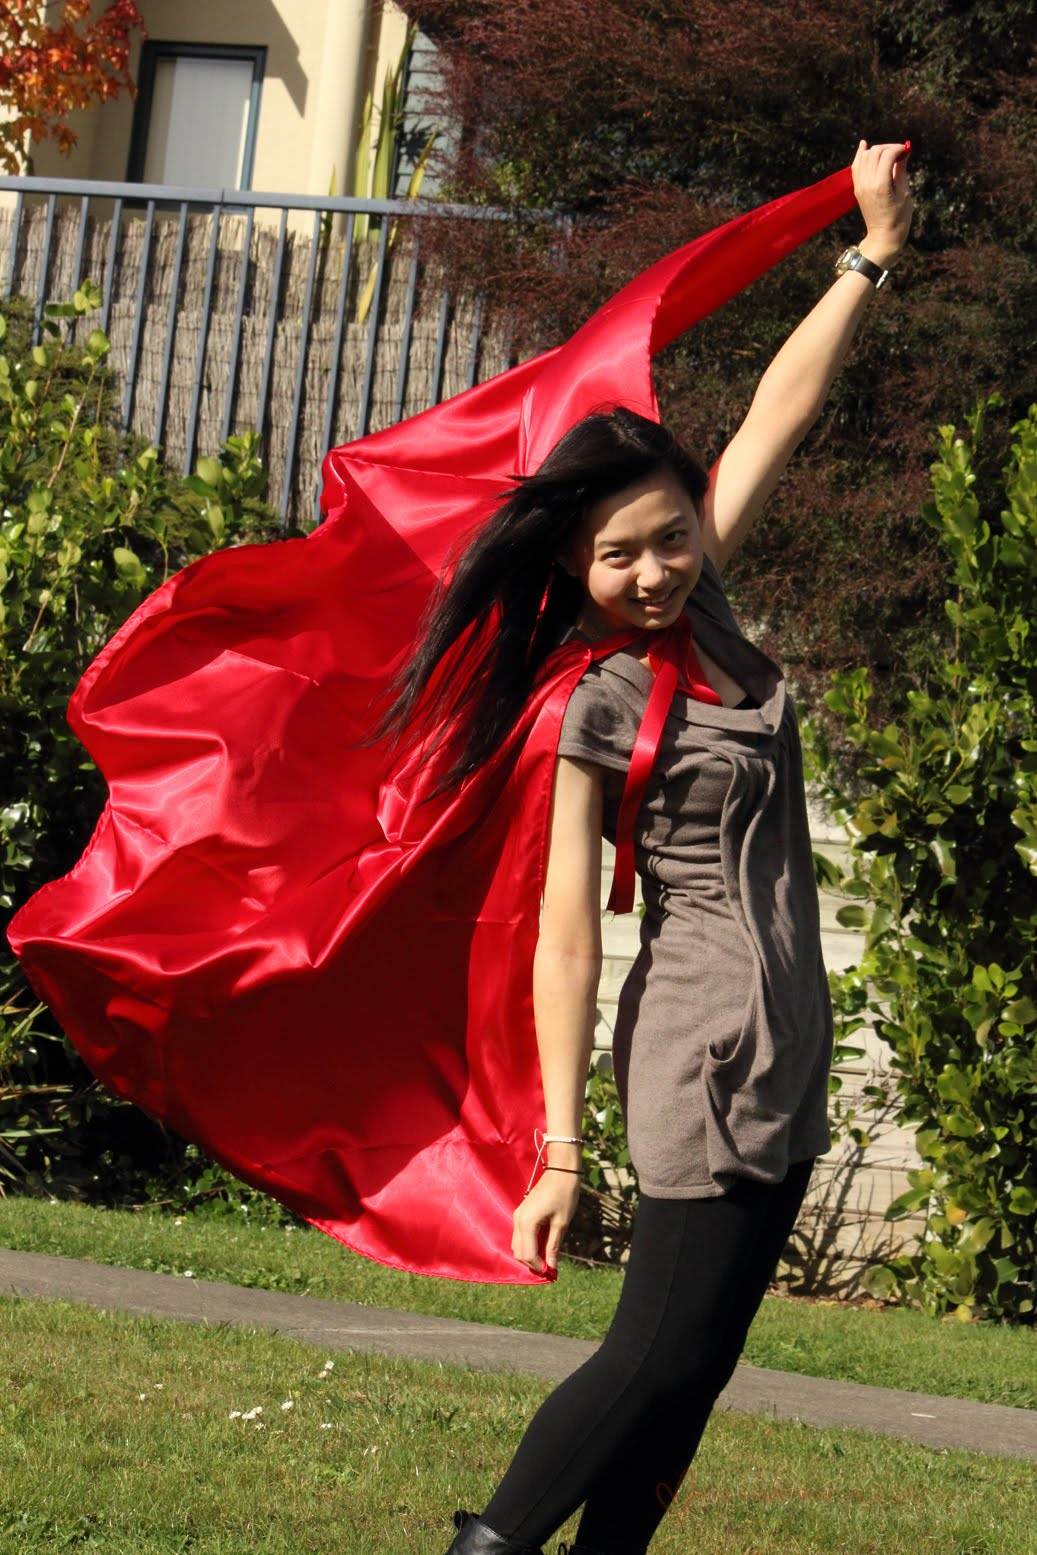 Diy Red And Black Eye Makeup: Red Riding Hood Cape